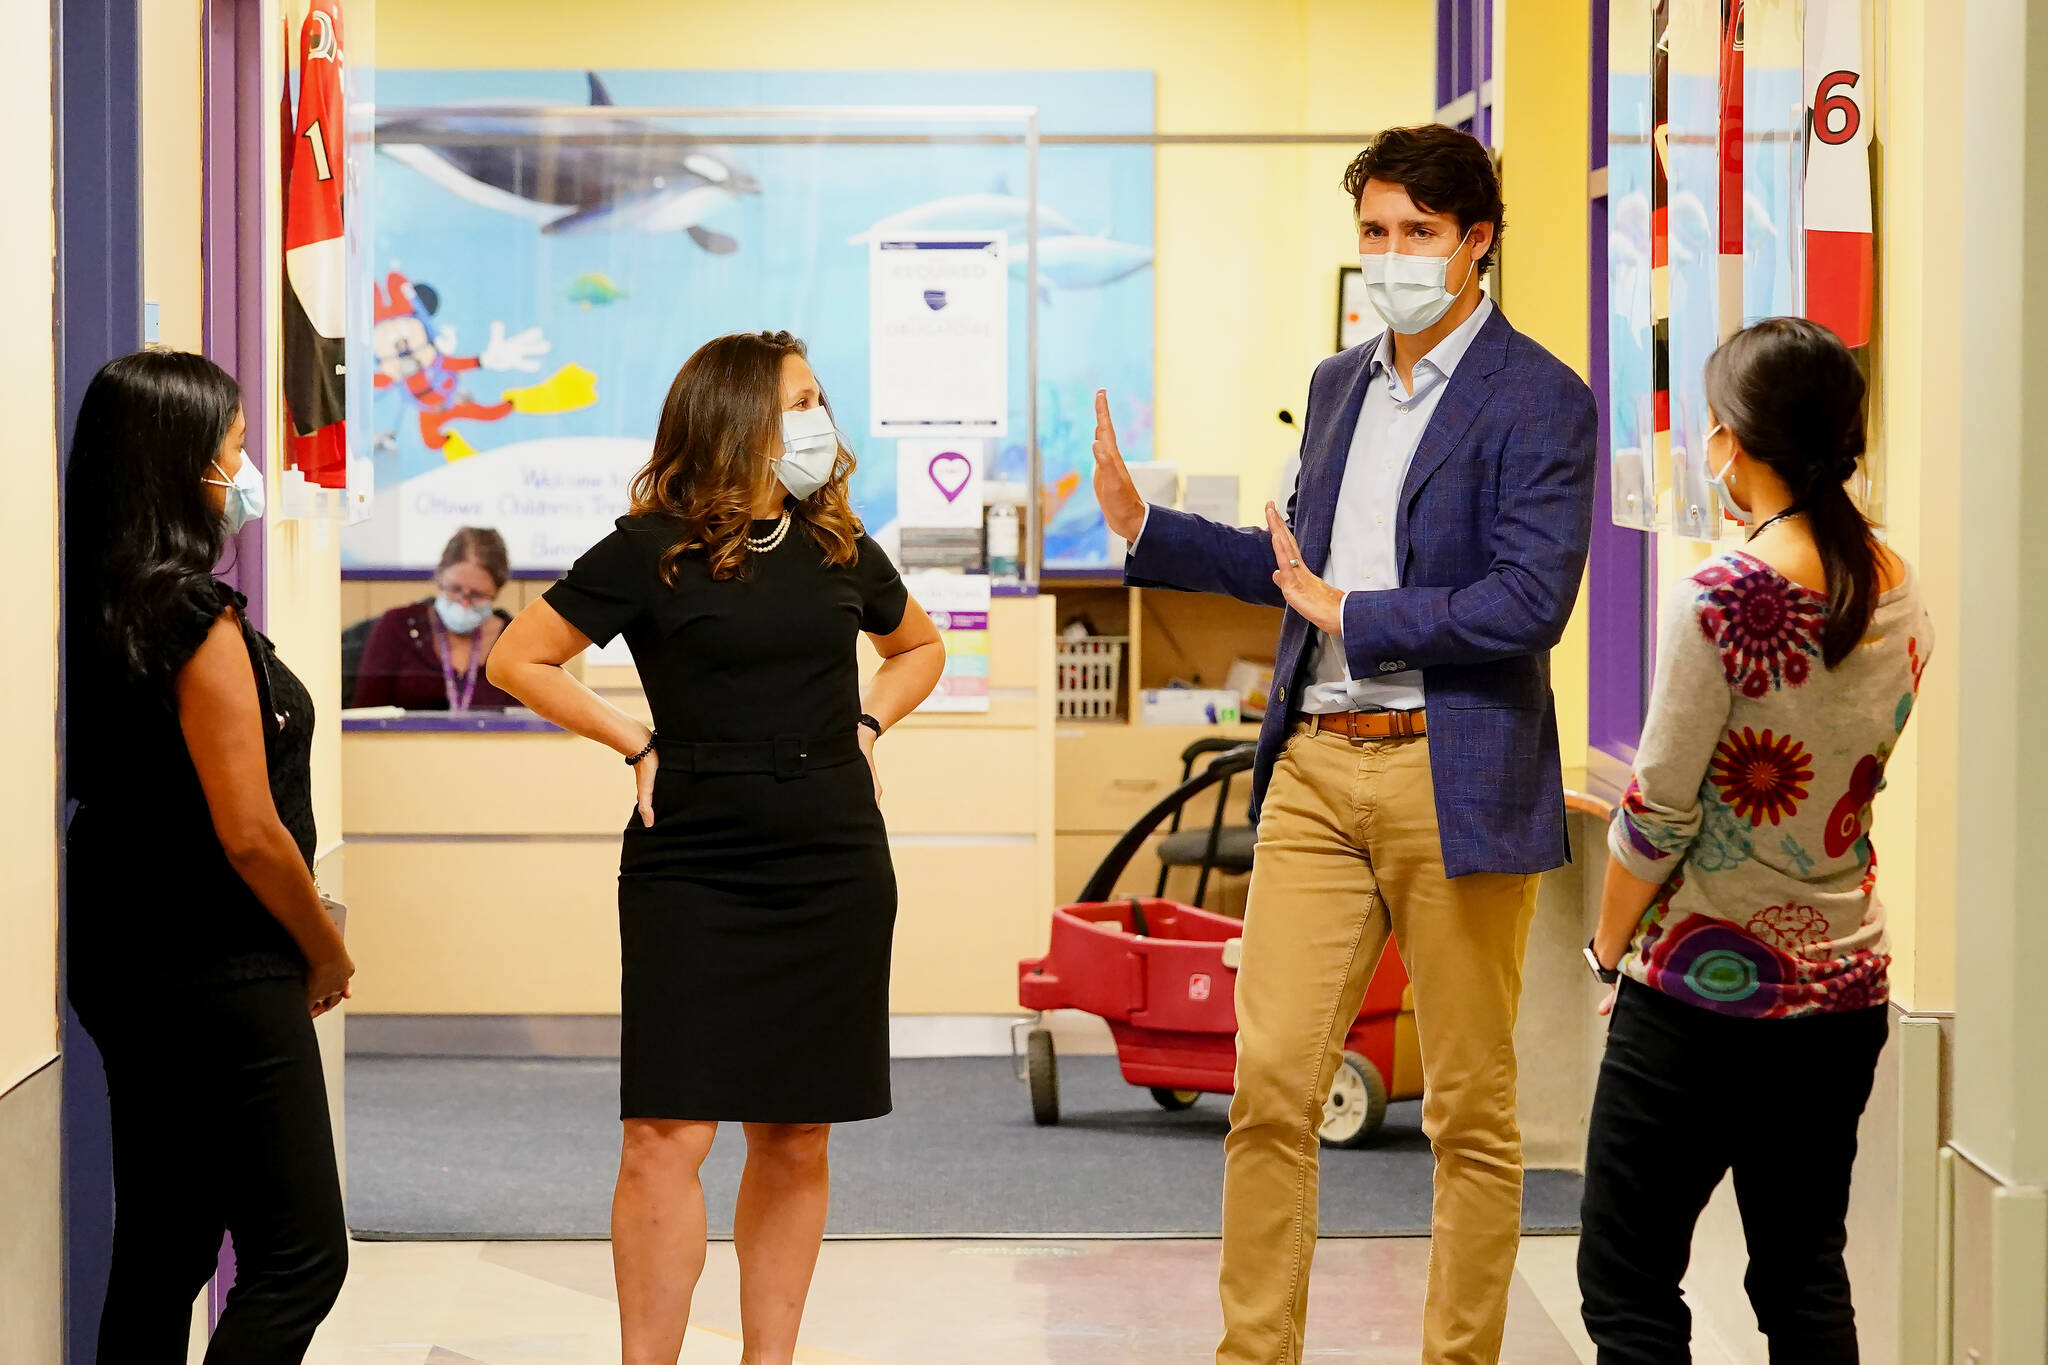 Prime Minister Justin Trudeau and Deputy Prime Minister Chrystia Freeland meet with doctors at the Children's Hospital of Eastern Ontario, in Ottawa, Thursday, Oct. 21, 2021, during a visit to announce Canada's new vaccine passport. THE CANADIAN PRESS/Sean Kilpatrick